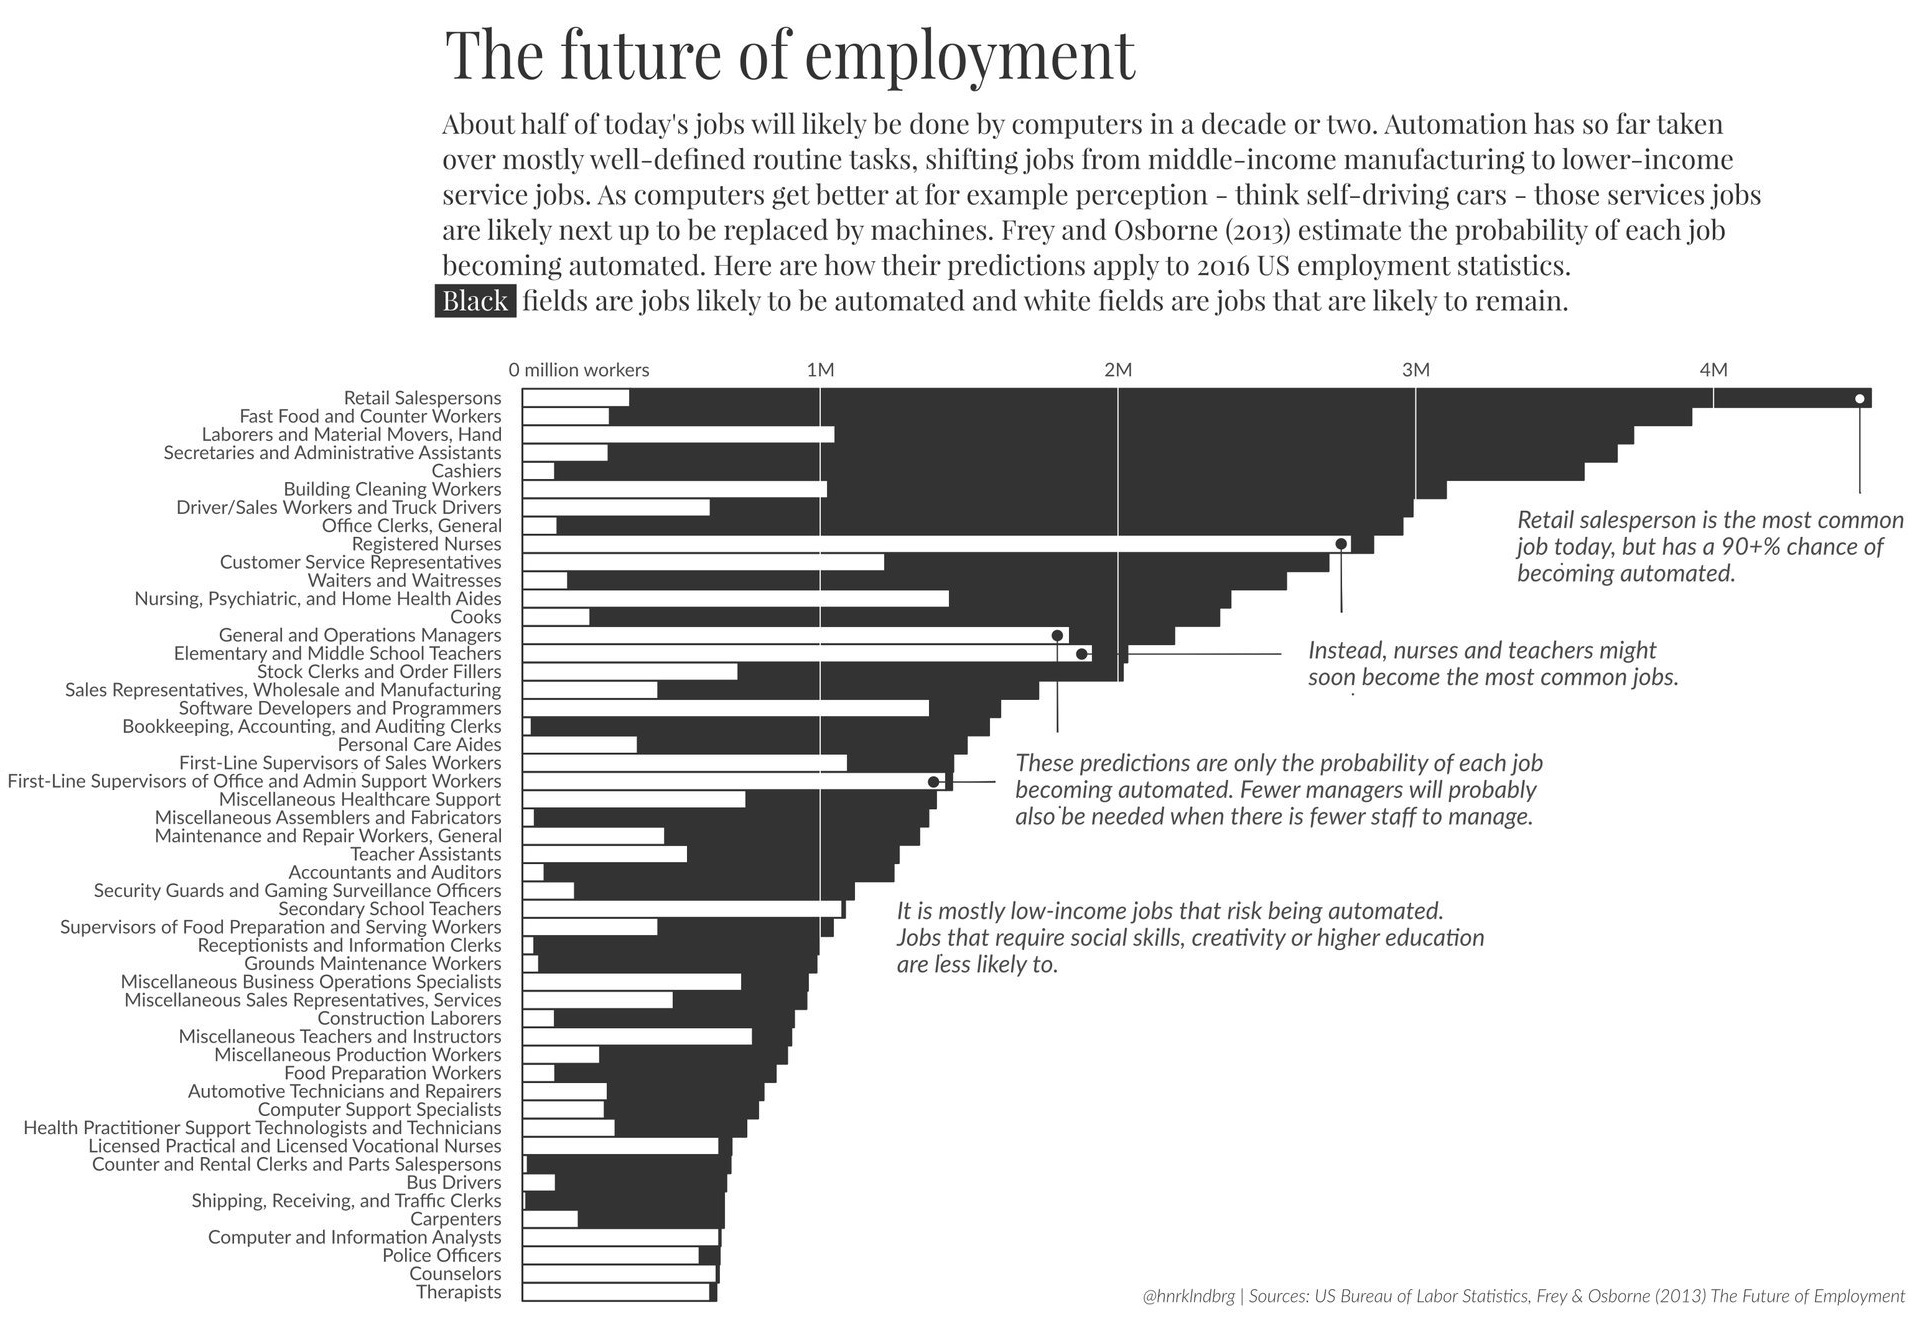 https://www.visualcapitalist.com/visualizing-jobs-lost-automation/